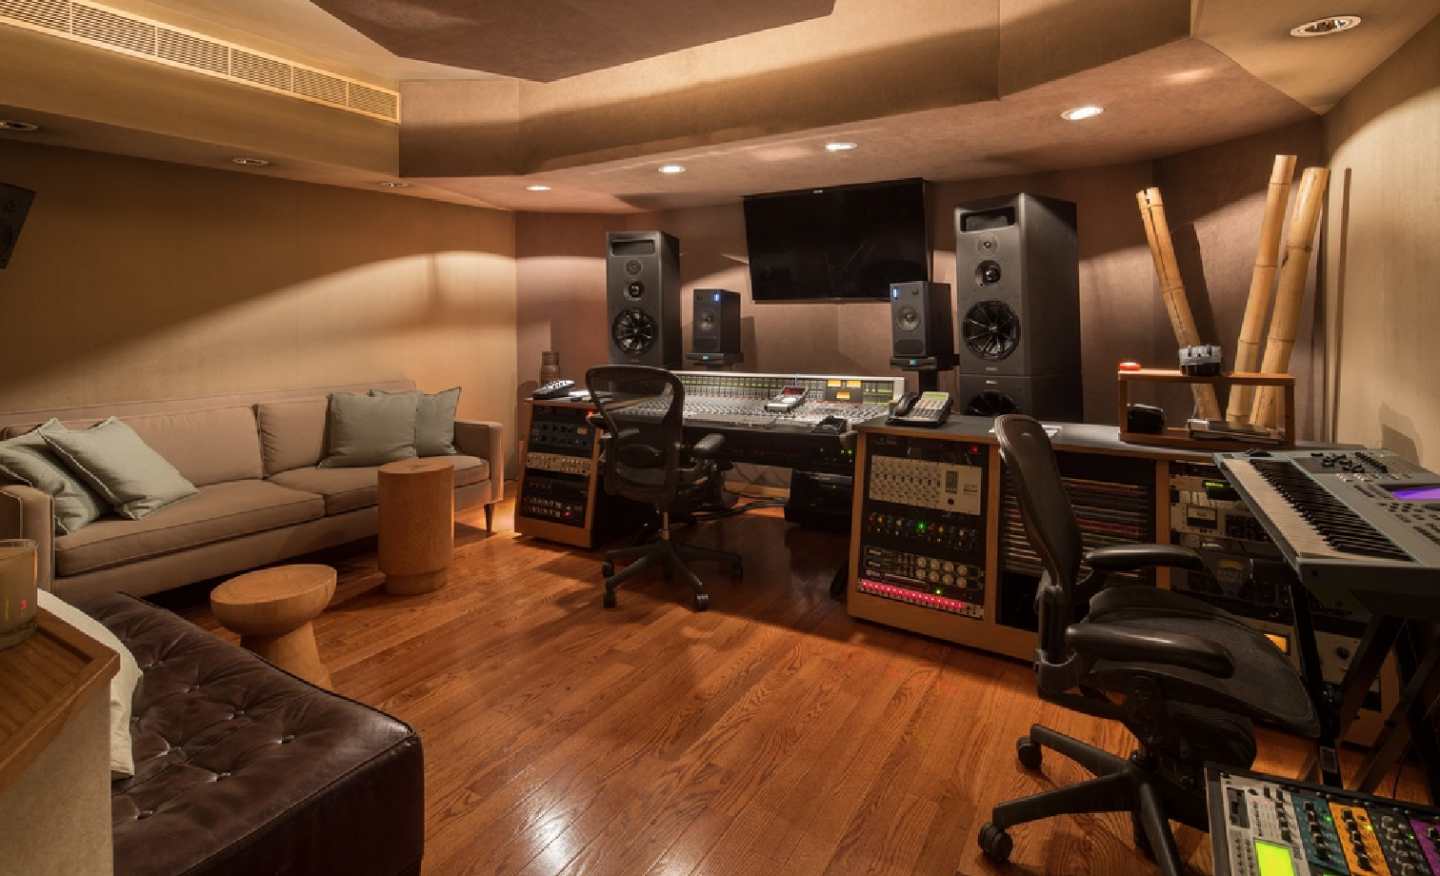 Mixing room, adjacent to the recording studio